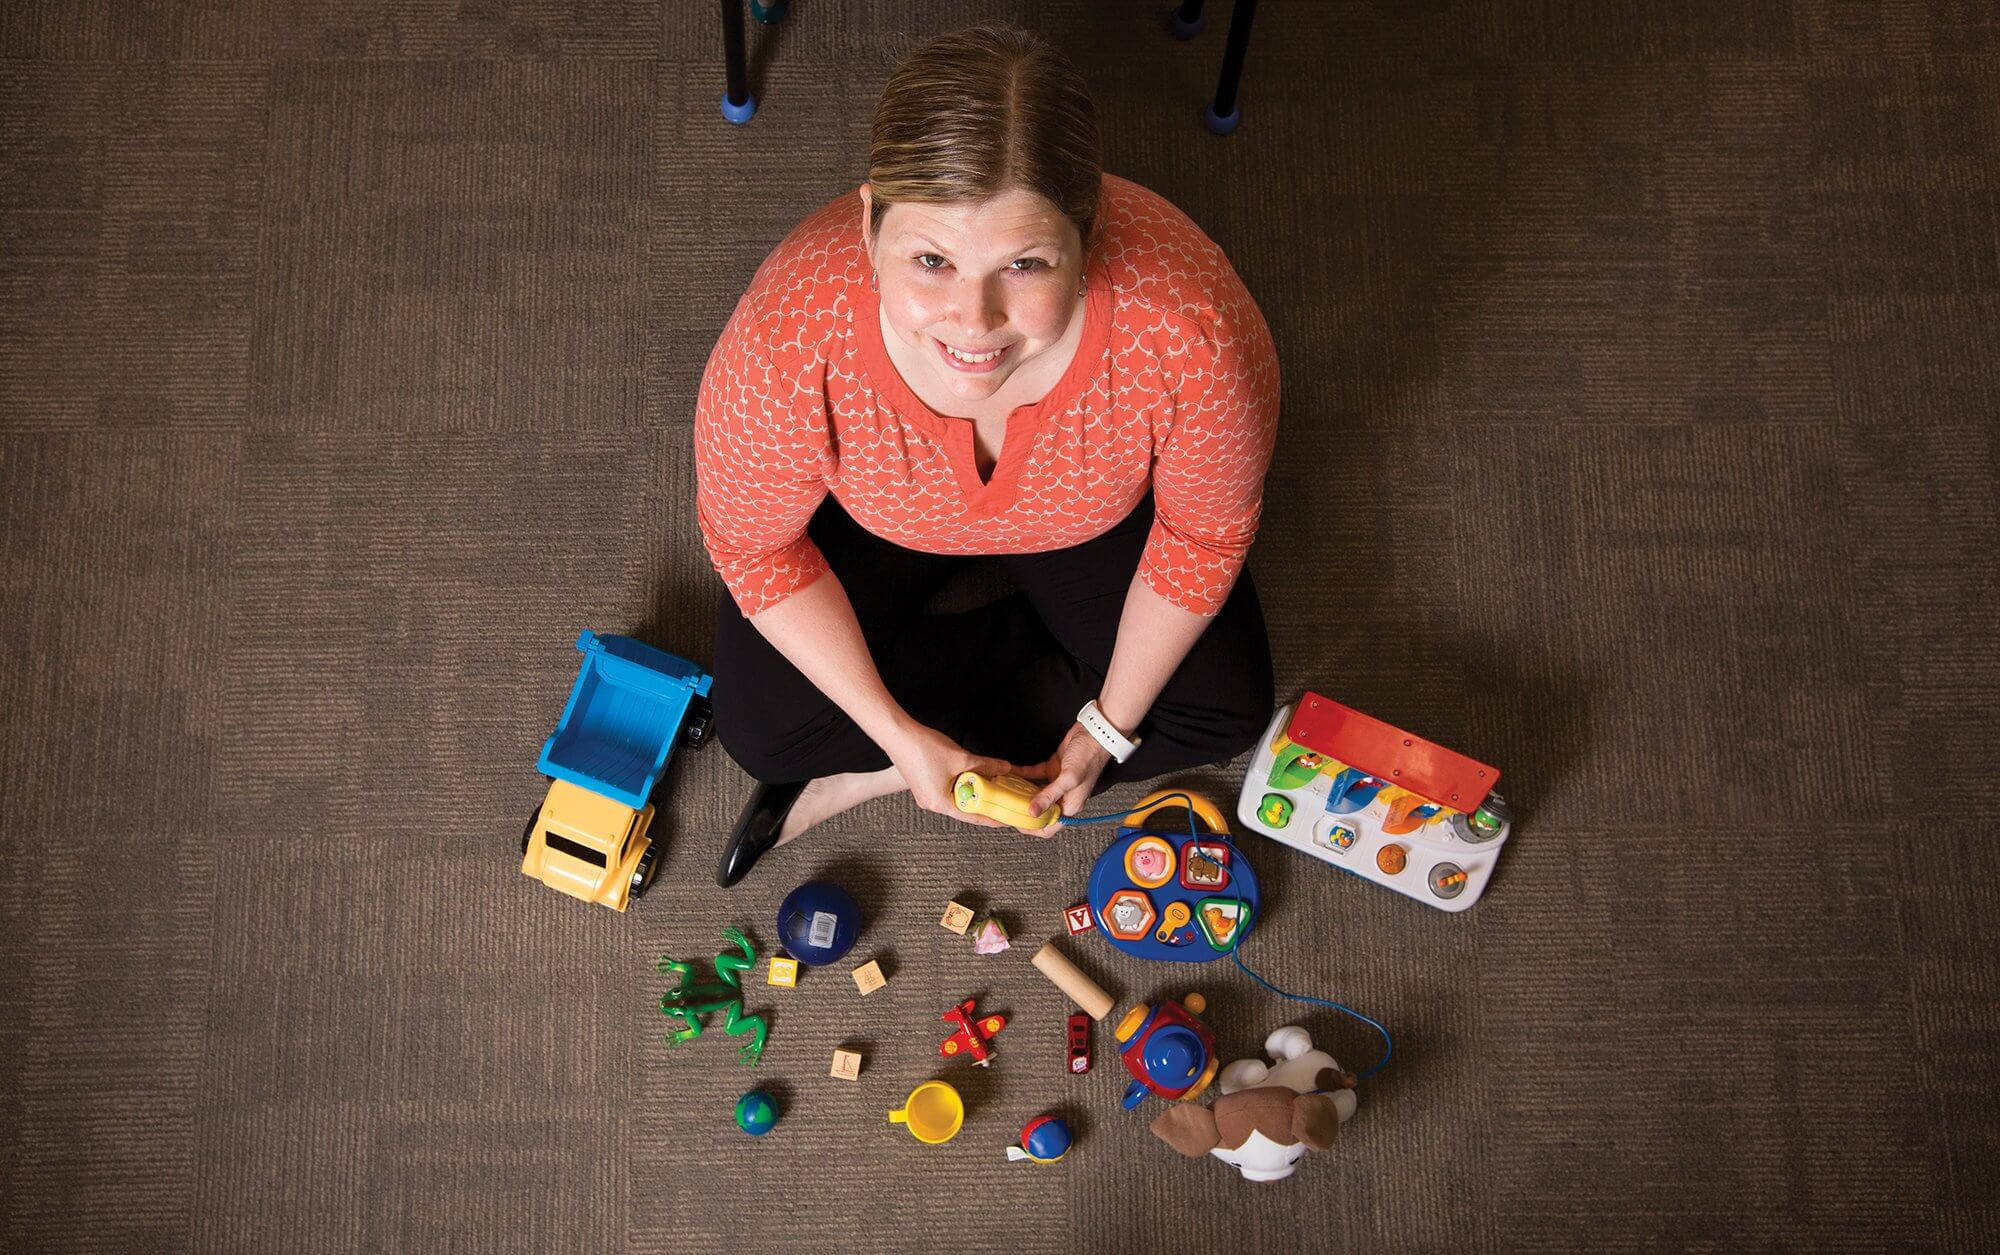 LEANDRA BERRY, Ph.D., pediatric neuropsychologist and associate director of clinical services at The Autism Center at Texas Children's Hospital